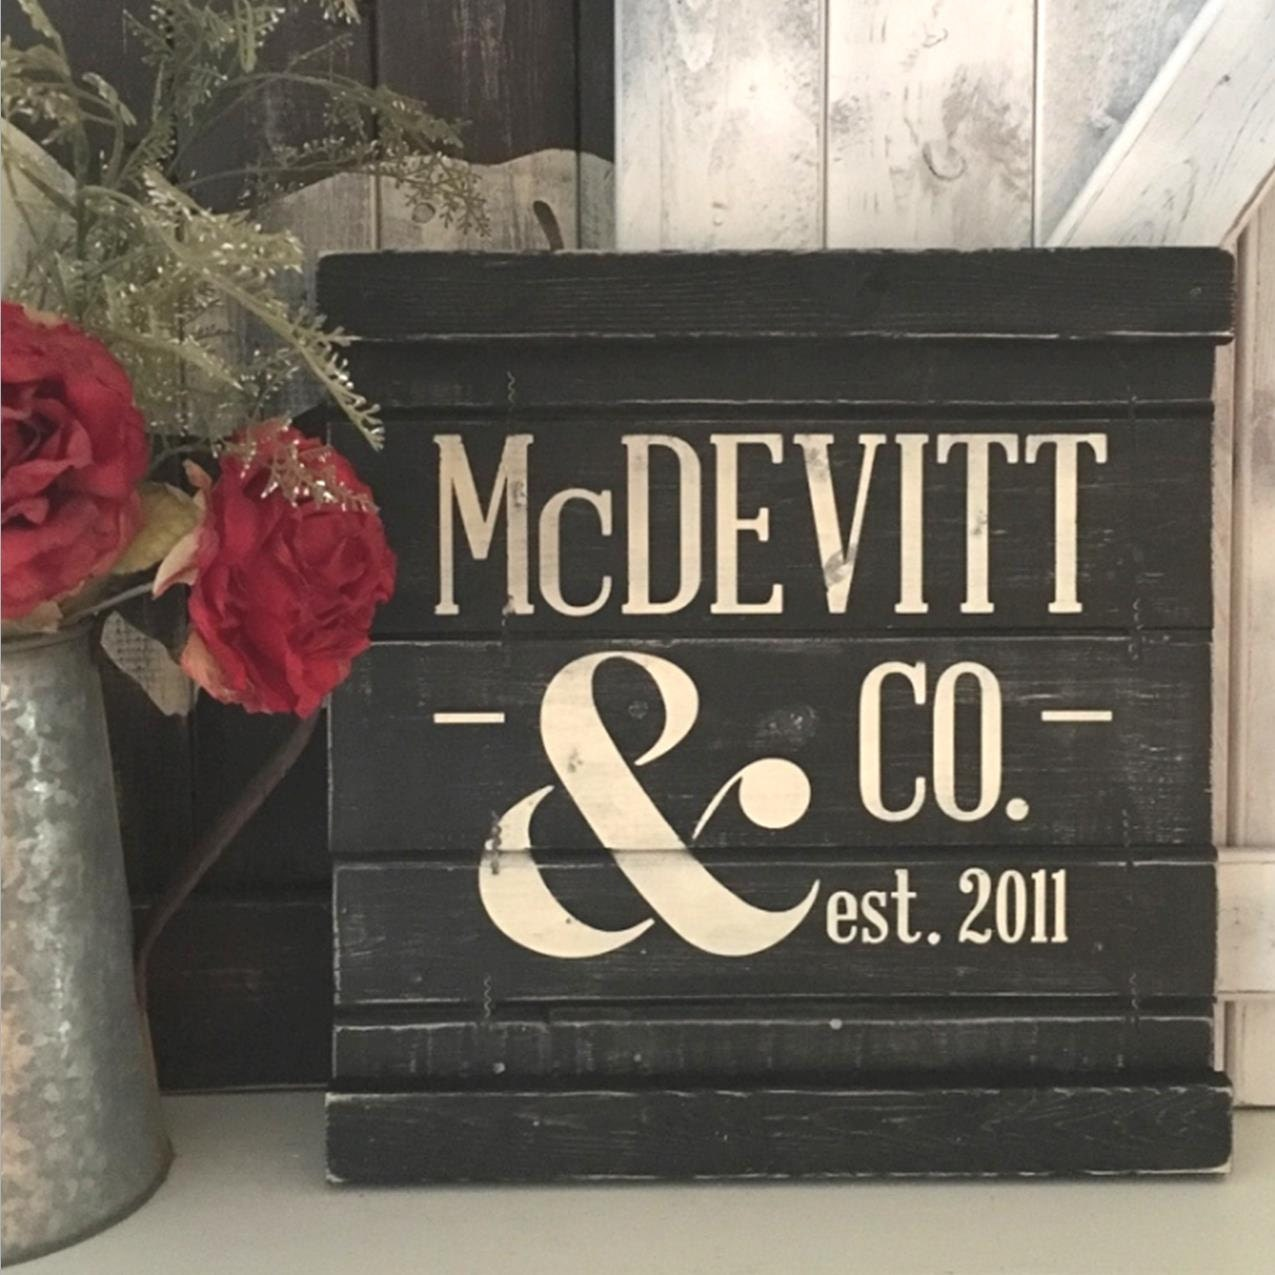 5th Wedding Anniversary Traditional Gift: 5th WEDDING ANNIVERSARY GIFT 5th Anniversary By